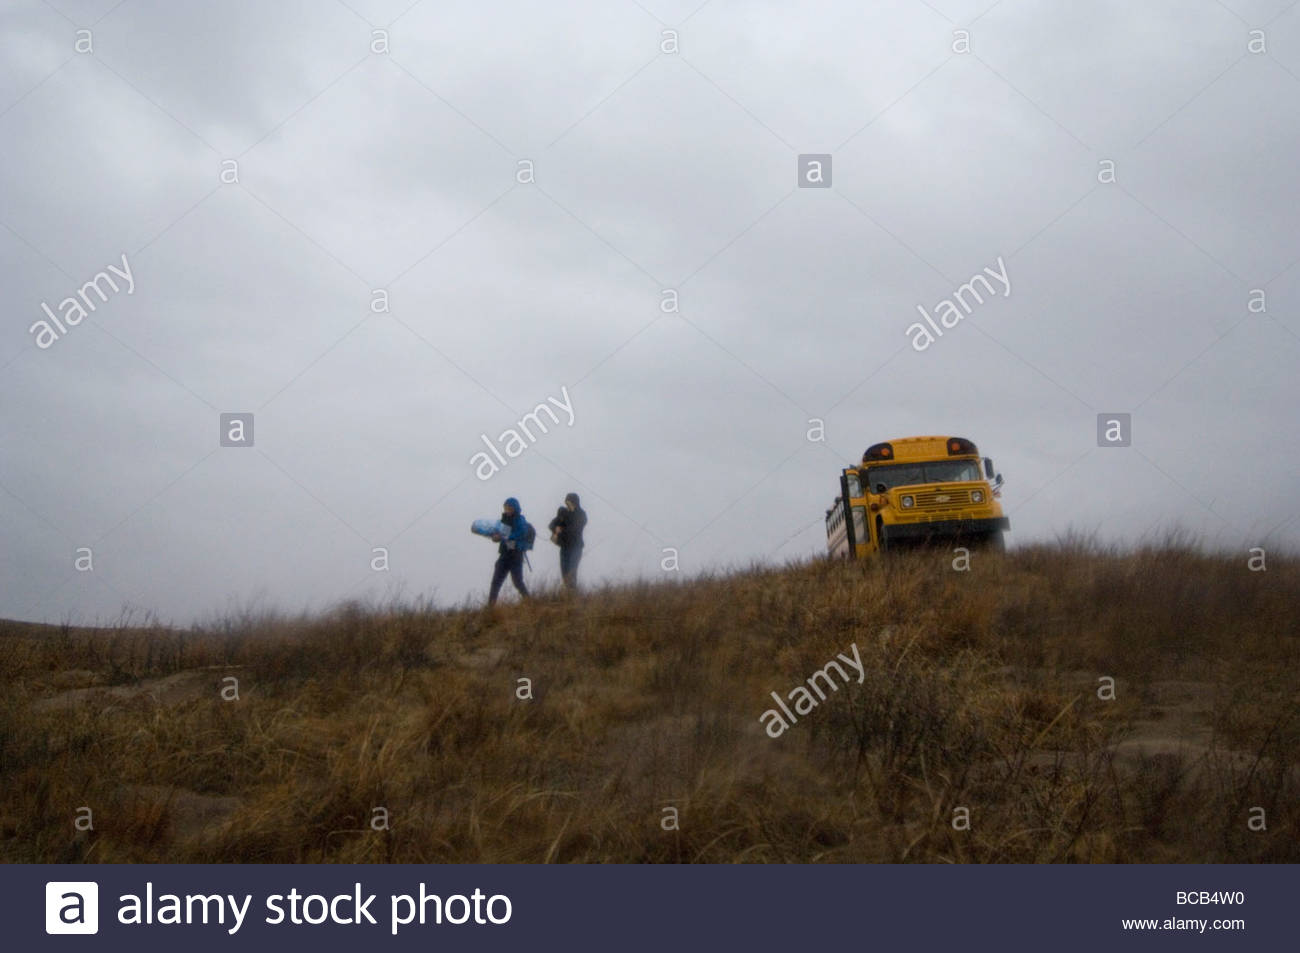 Grouse watchers after spending the rainy morning in a bird blind. - Stock Image